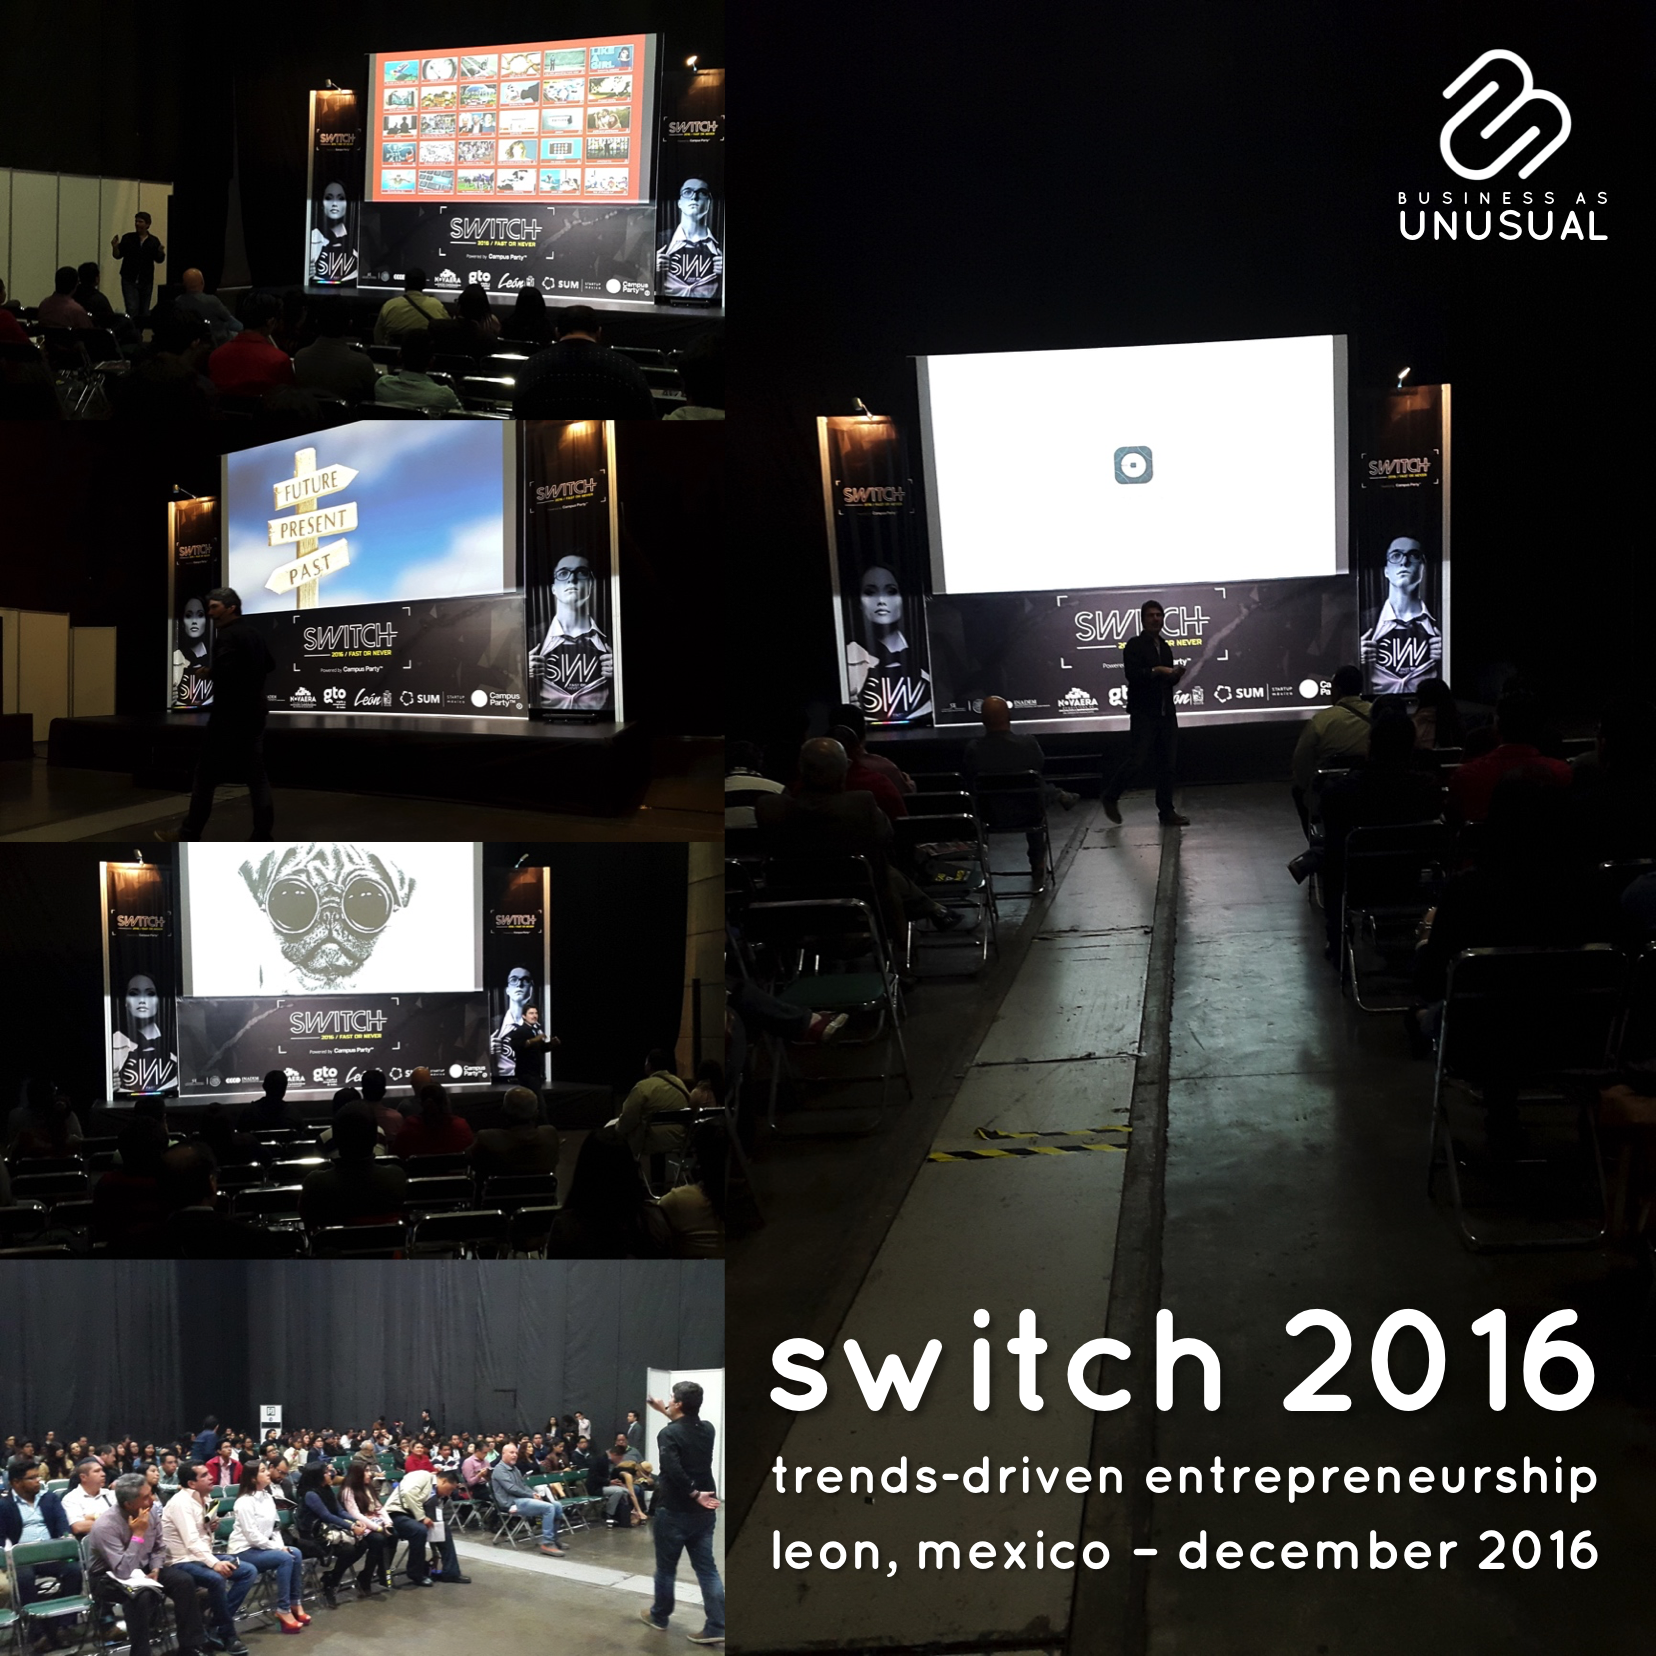 Switch 2016 - Trends-Driven Entrepreneurship